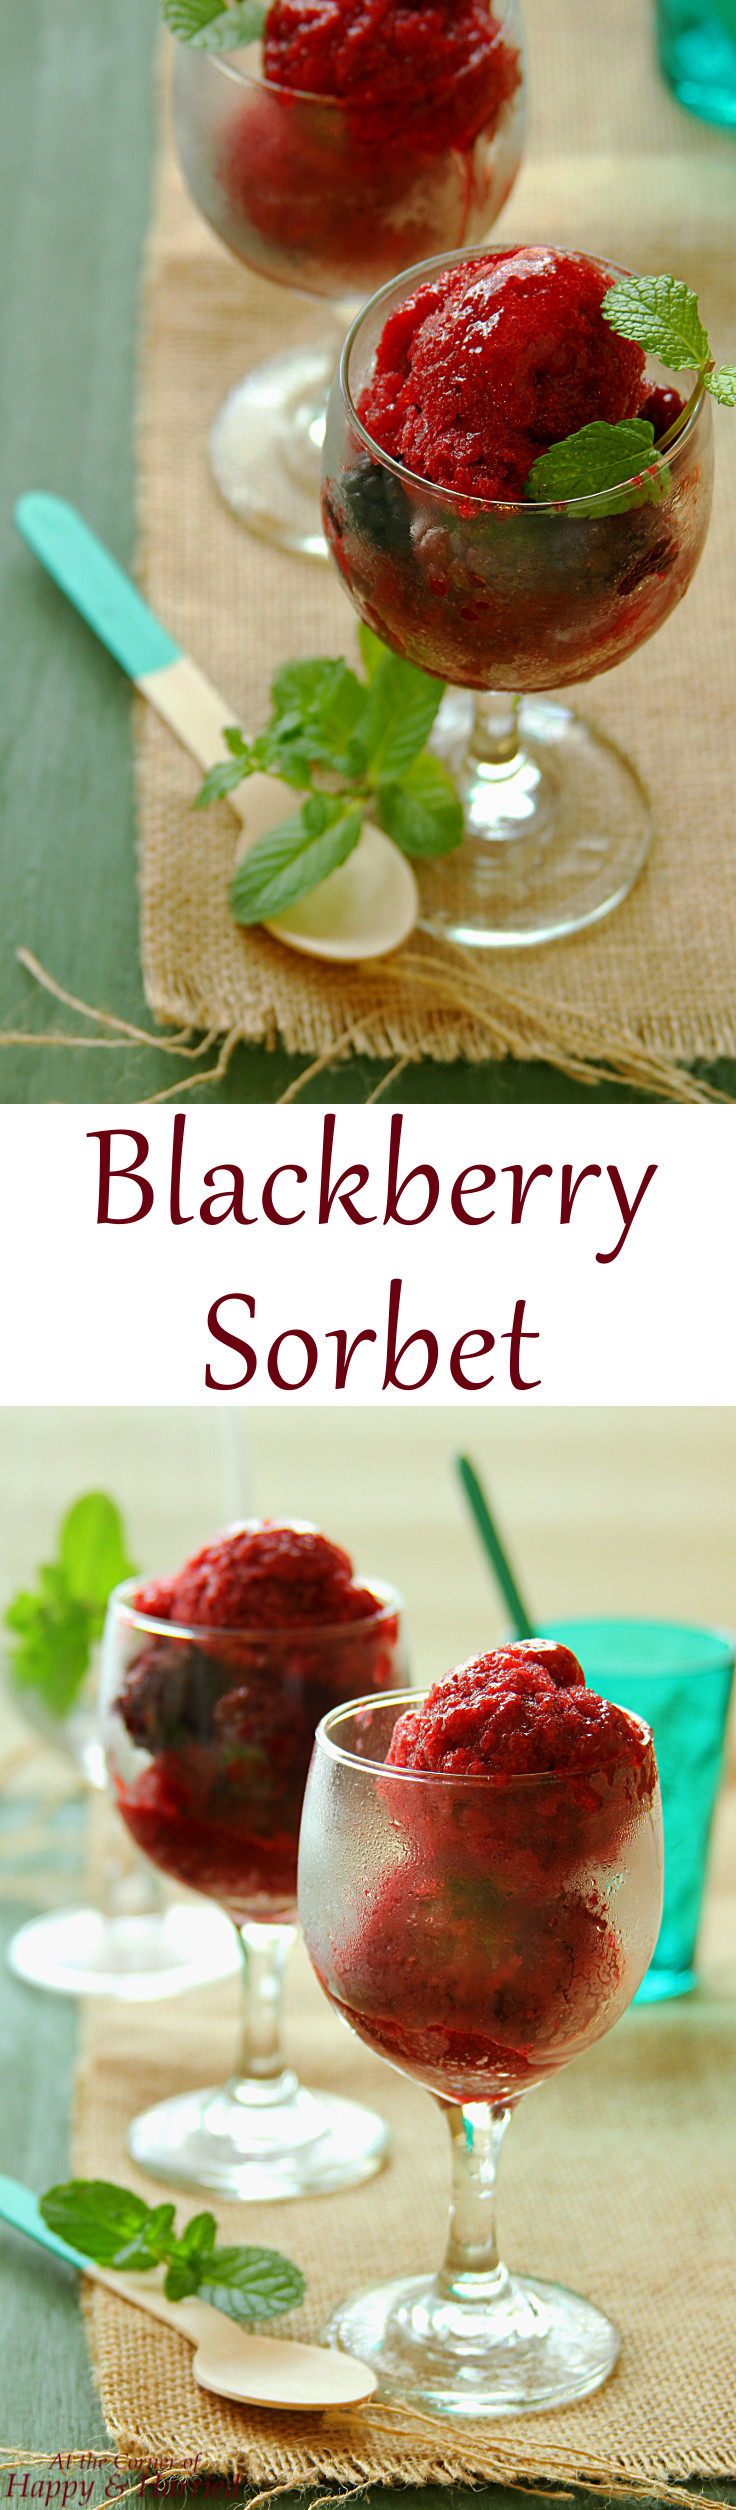 BLACKBERRY SORBET {HOW TO MAKE ANY FRUIT SORBET}